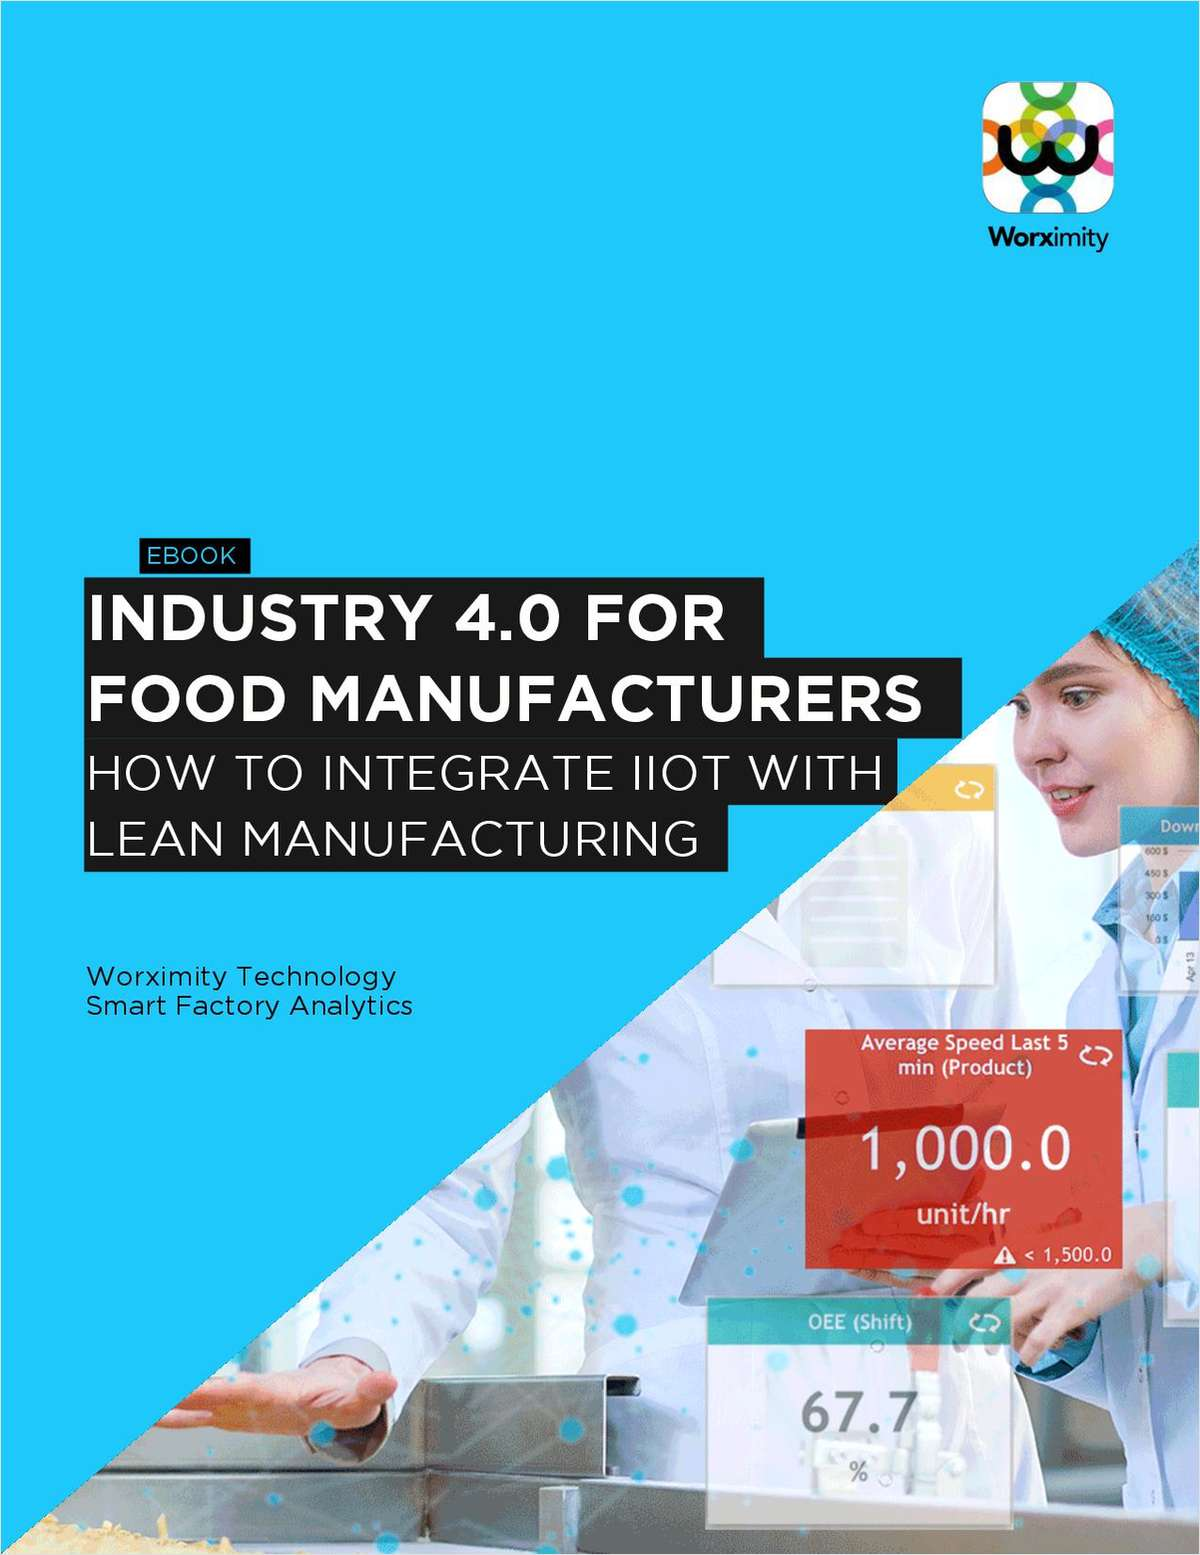 Industry 4.0 For Food Manufacturers - How to Integrate IIoT with Lean Manufacturing